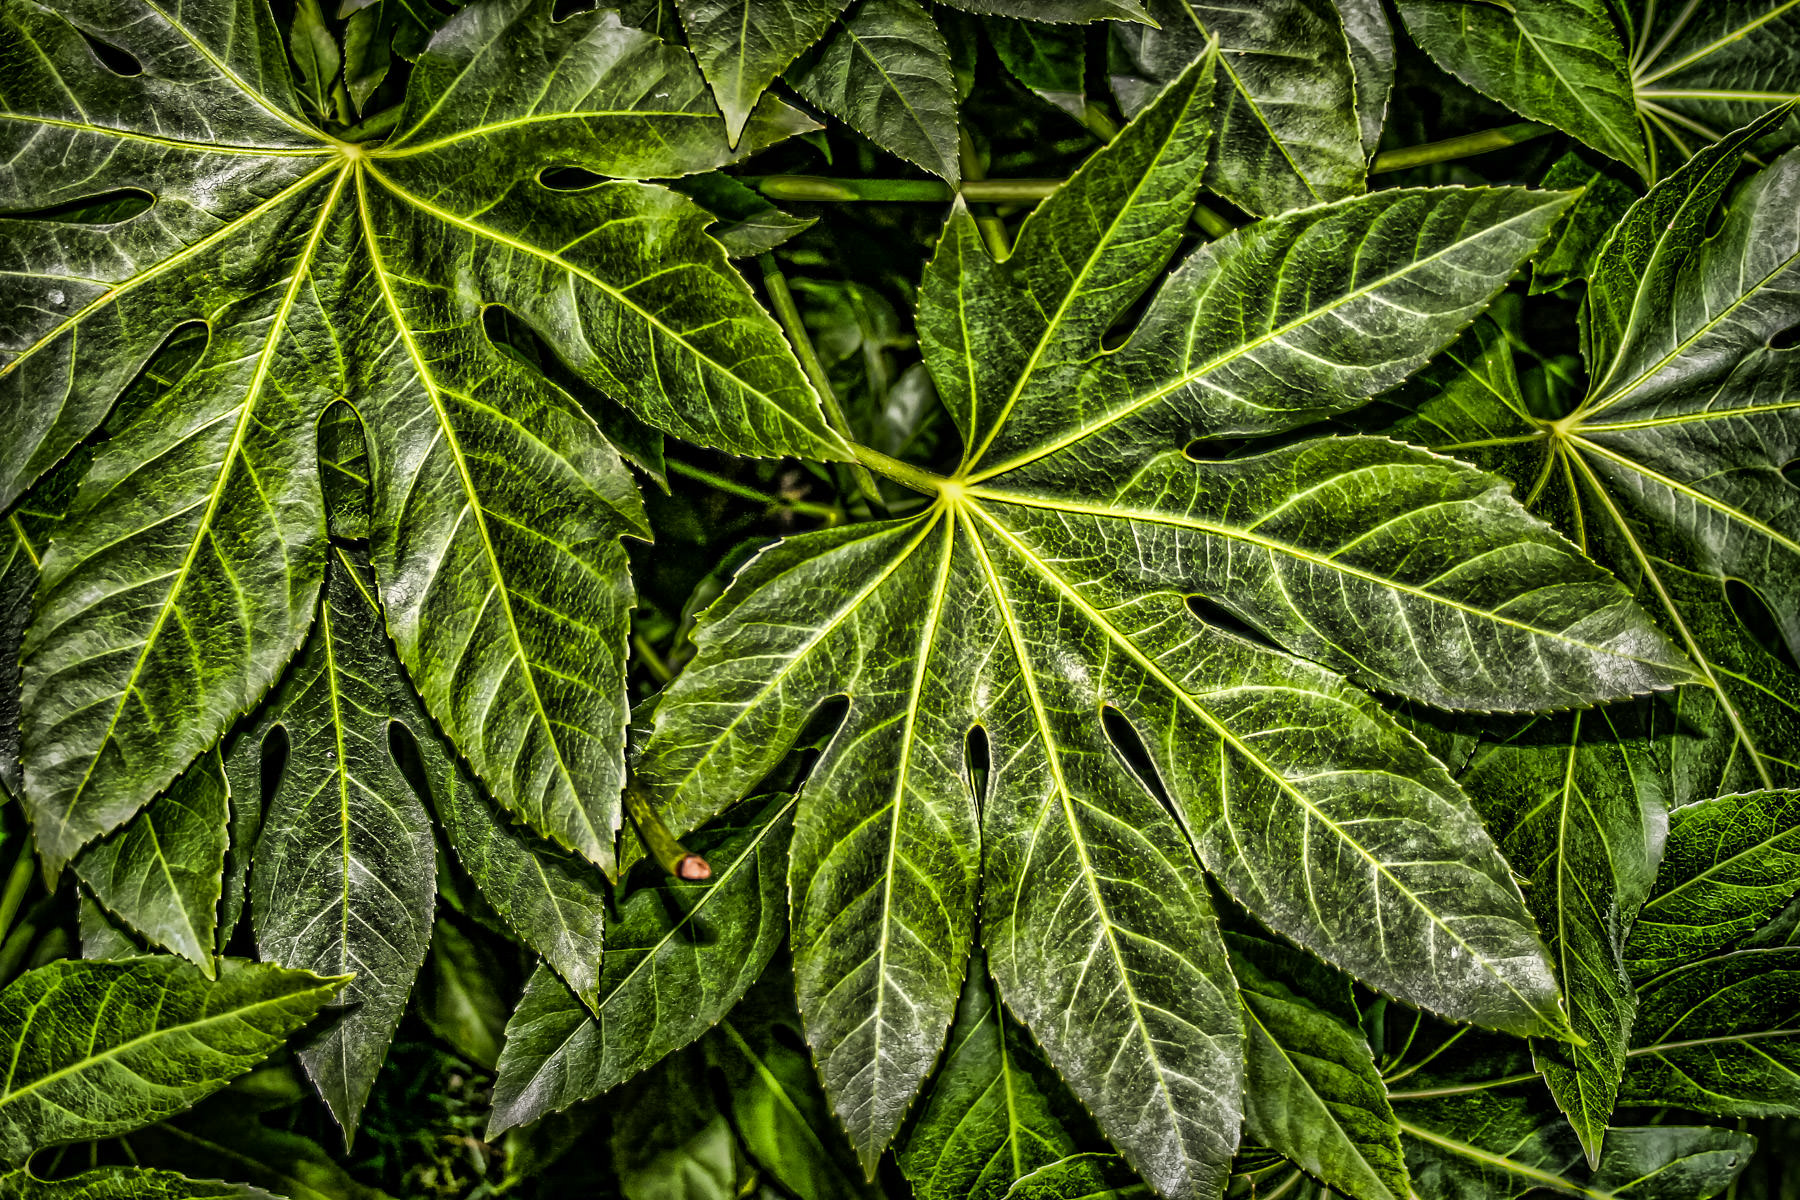 Large leaves spotted at the Fort Worth Botanic Garden, Texas.